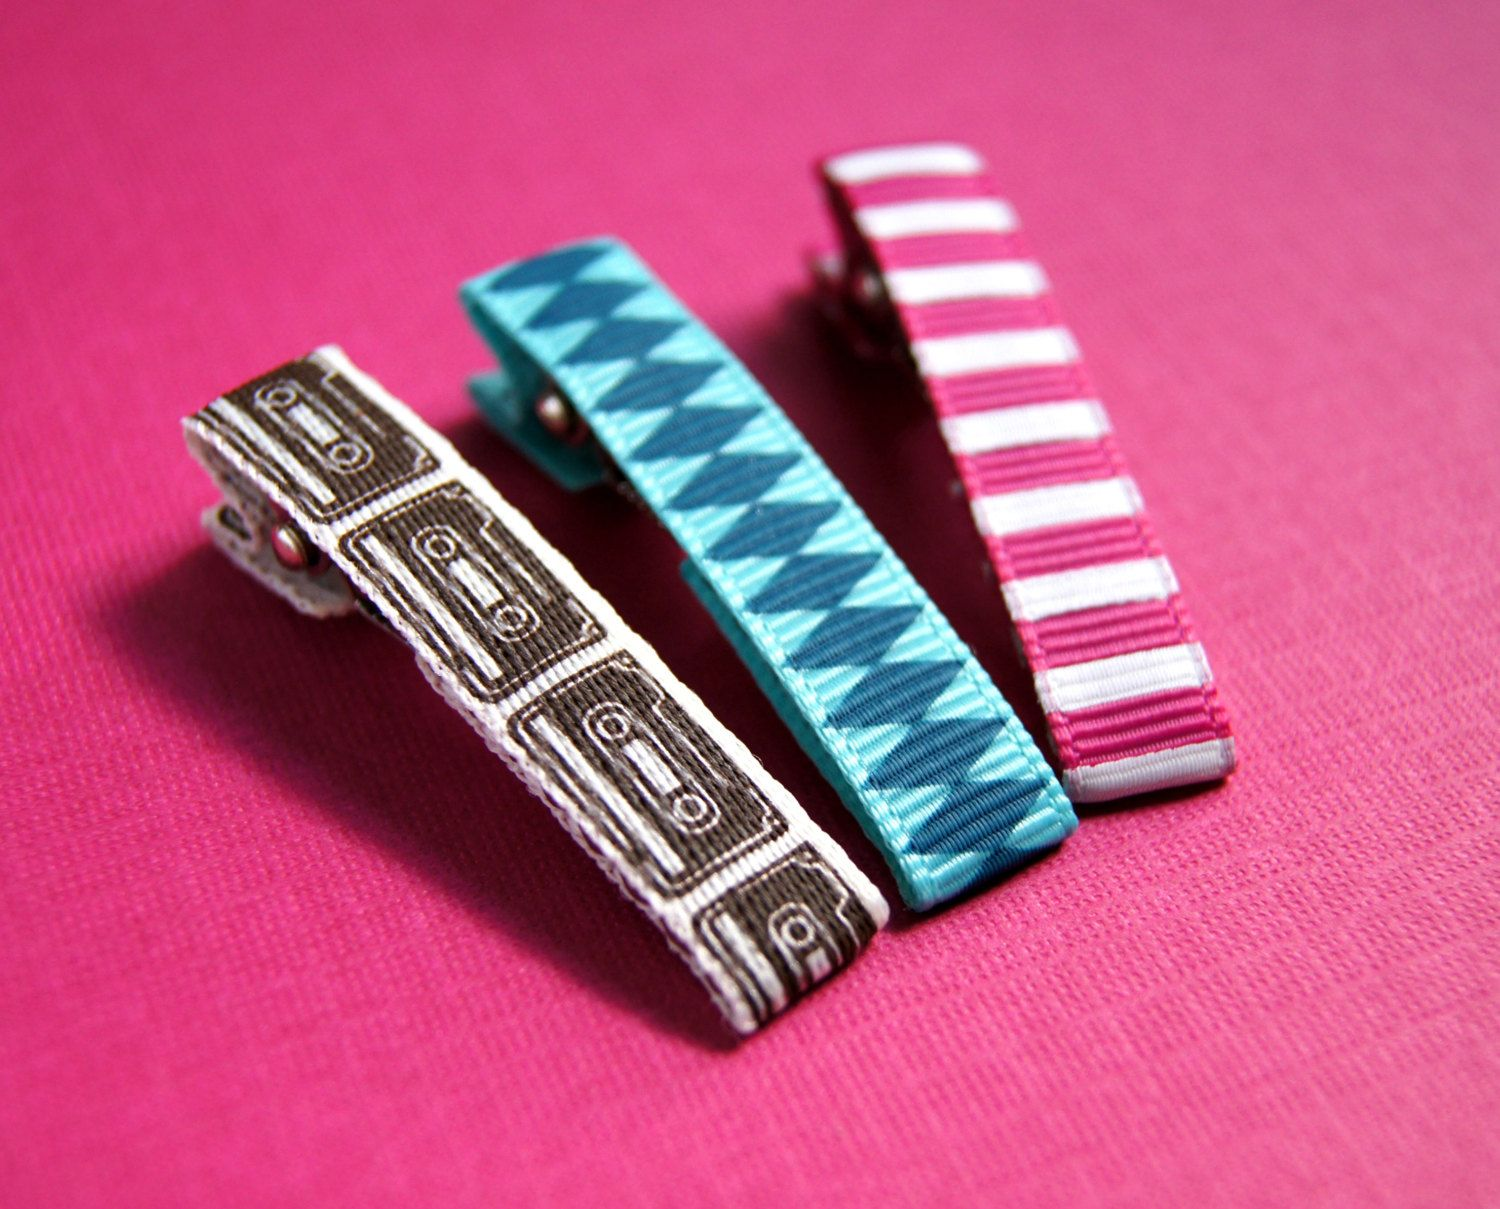 Girls Alligator Hair Clips - Cassette Tapes, Teal and Blue Diamonds, and Pink and White Stripes